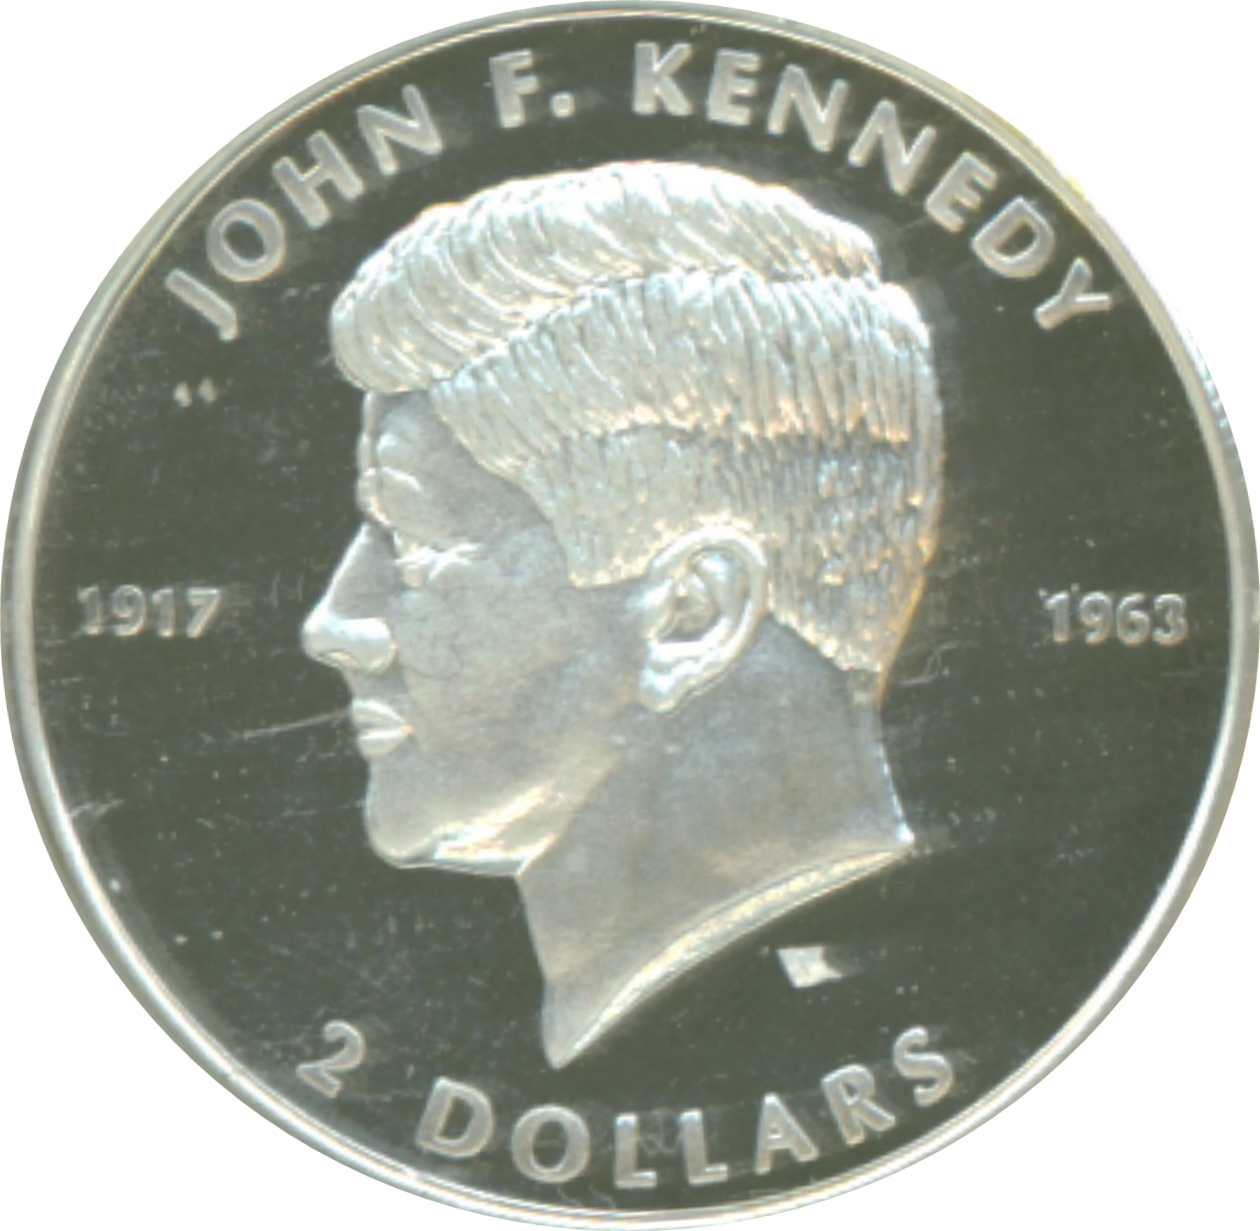 2 Dollars Elizabeth Ii John F Kennedy Cook Islands Numista